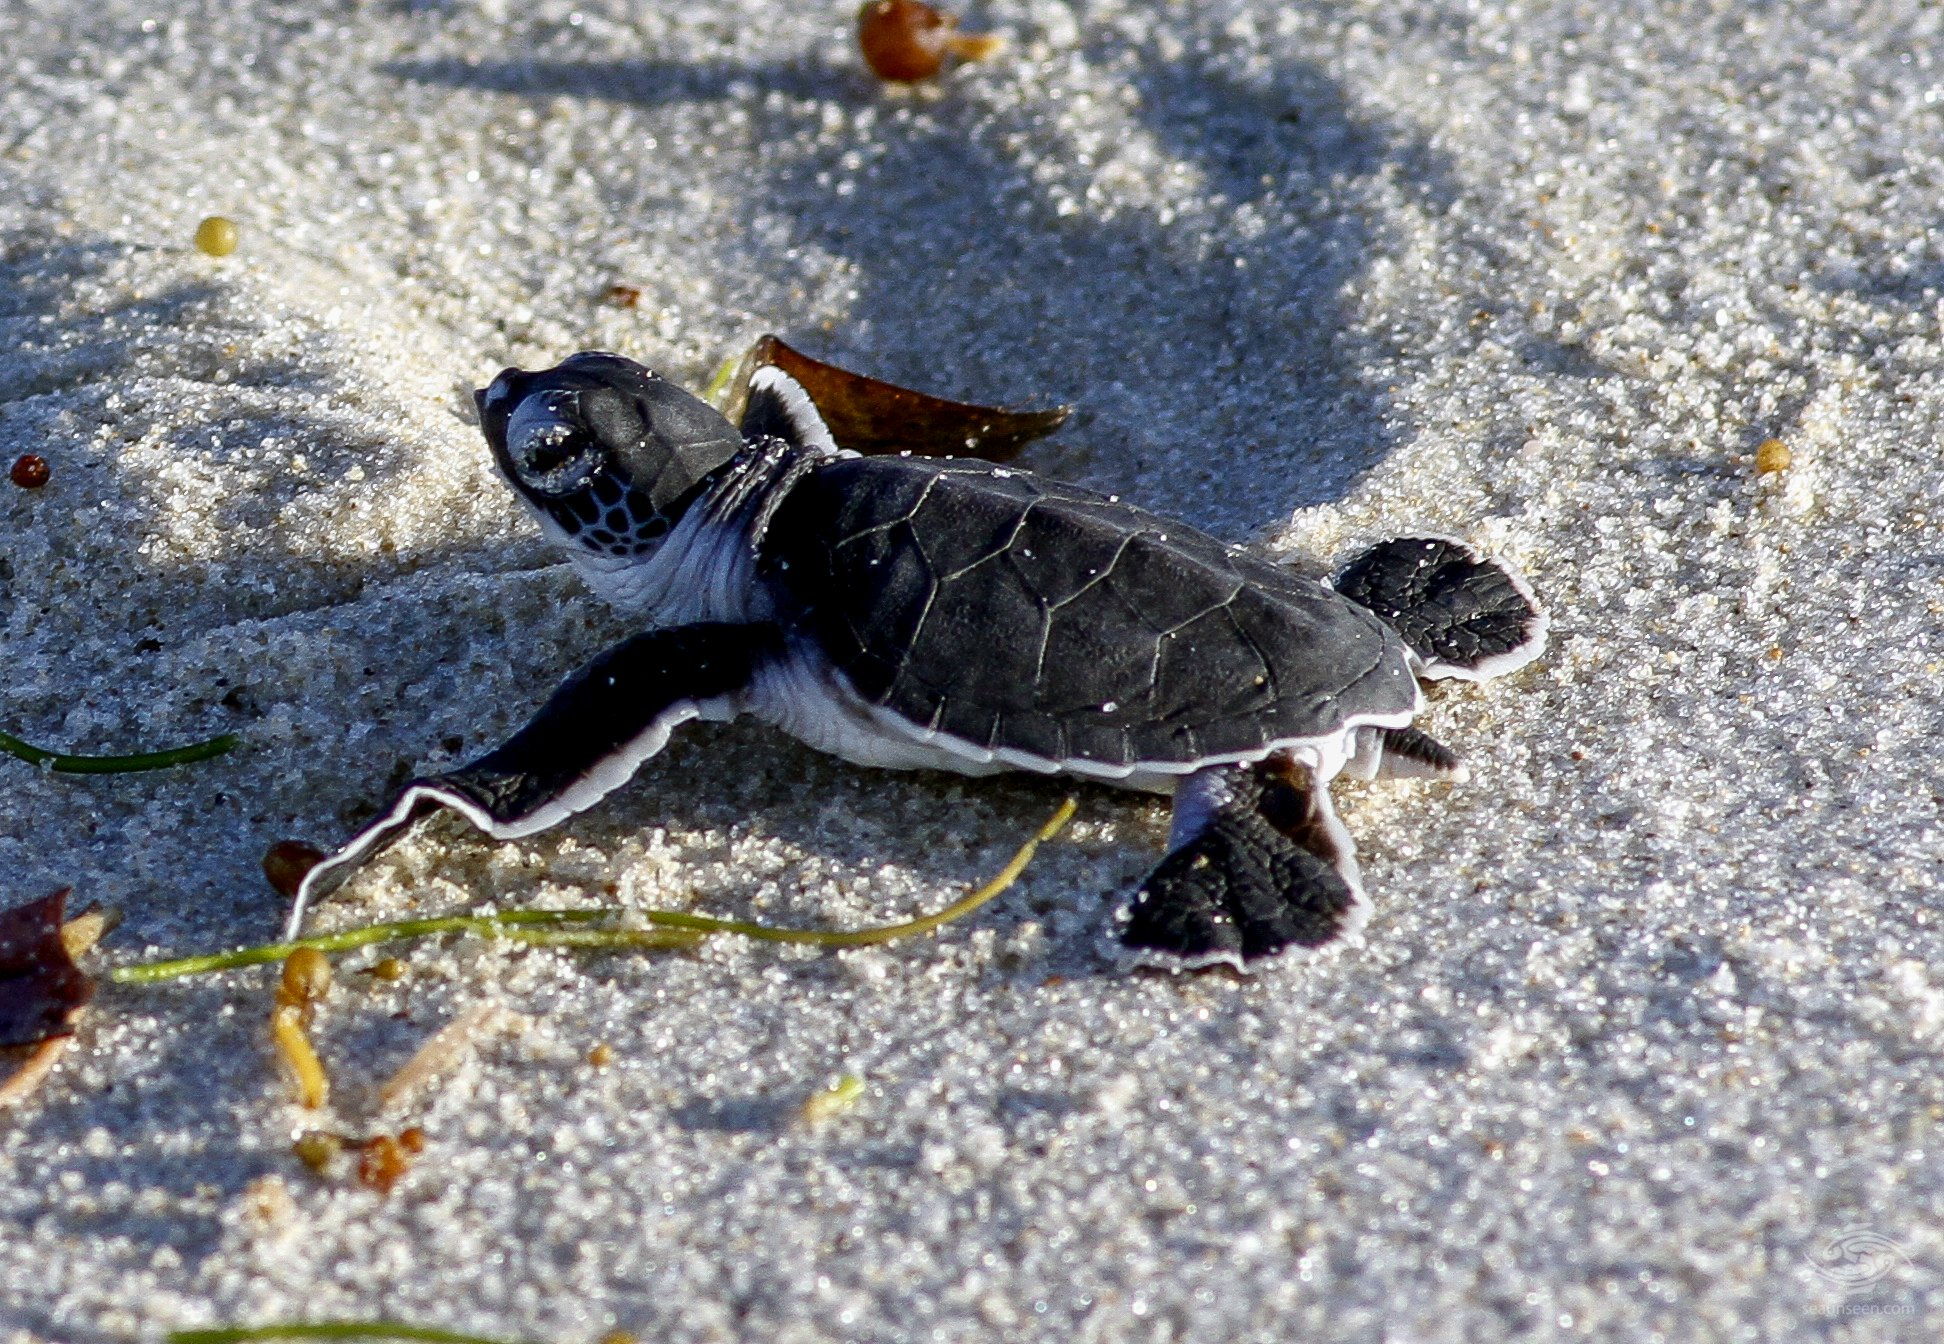 A young turtle just hatched on its way to the sea. Mafia Island